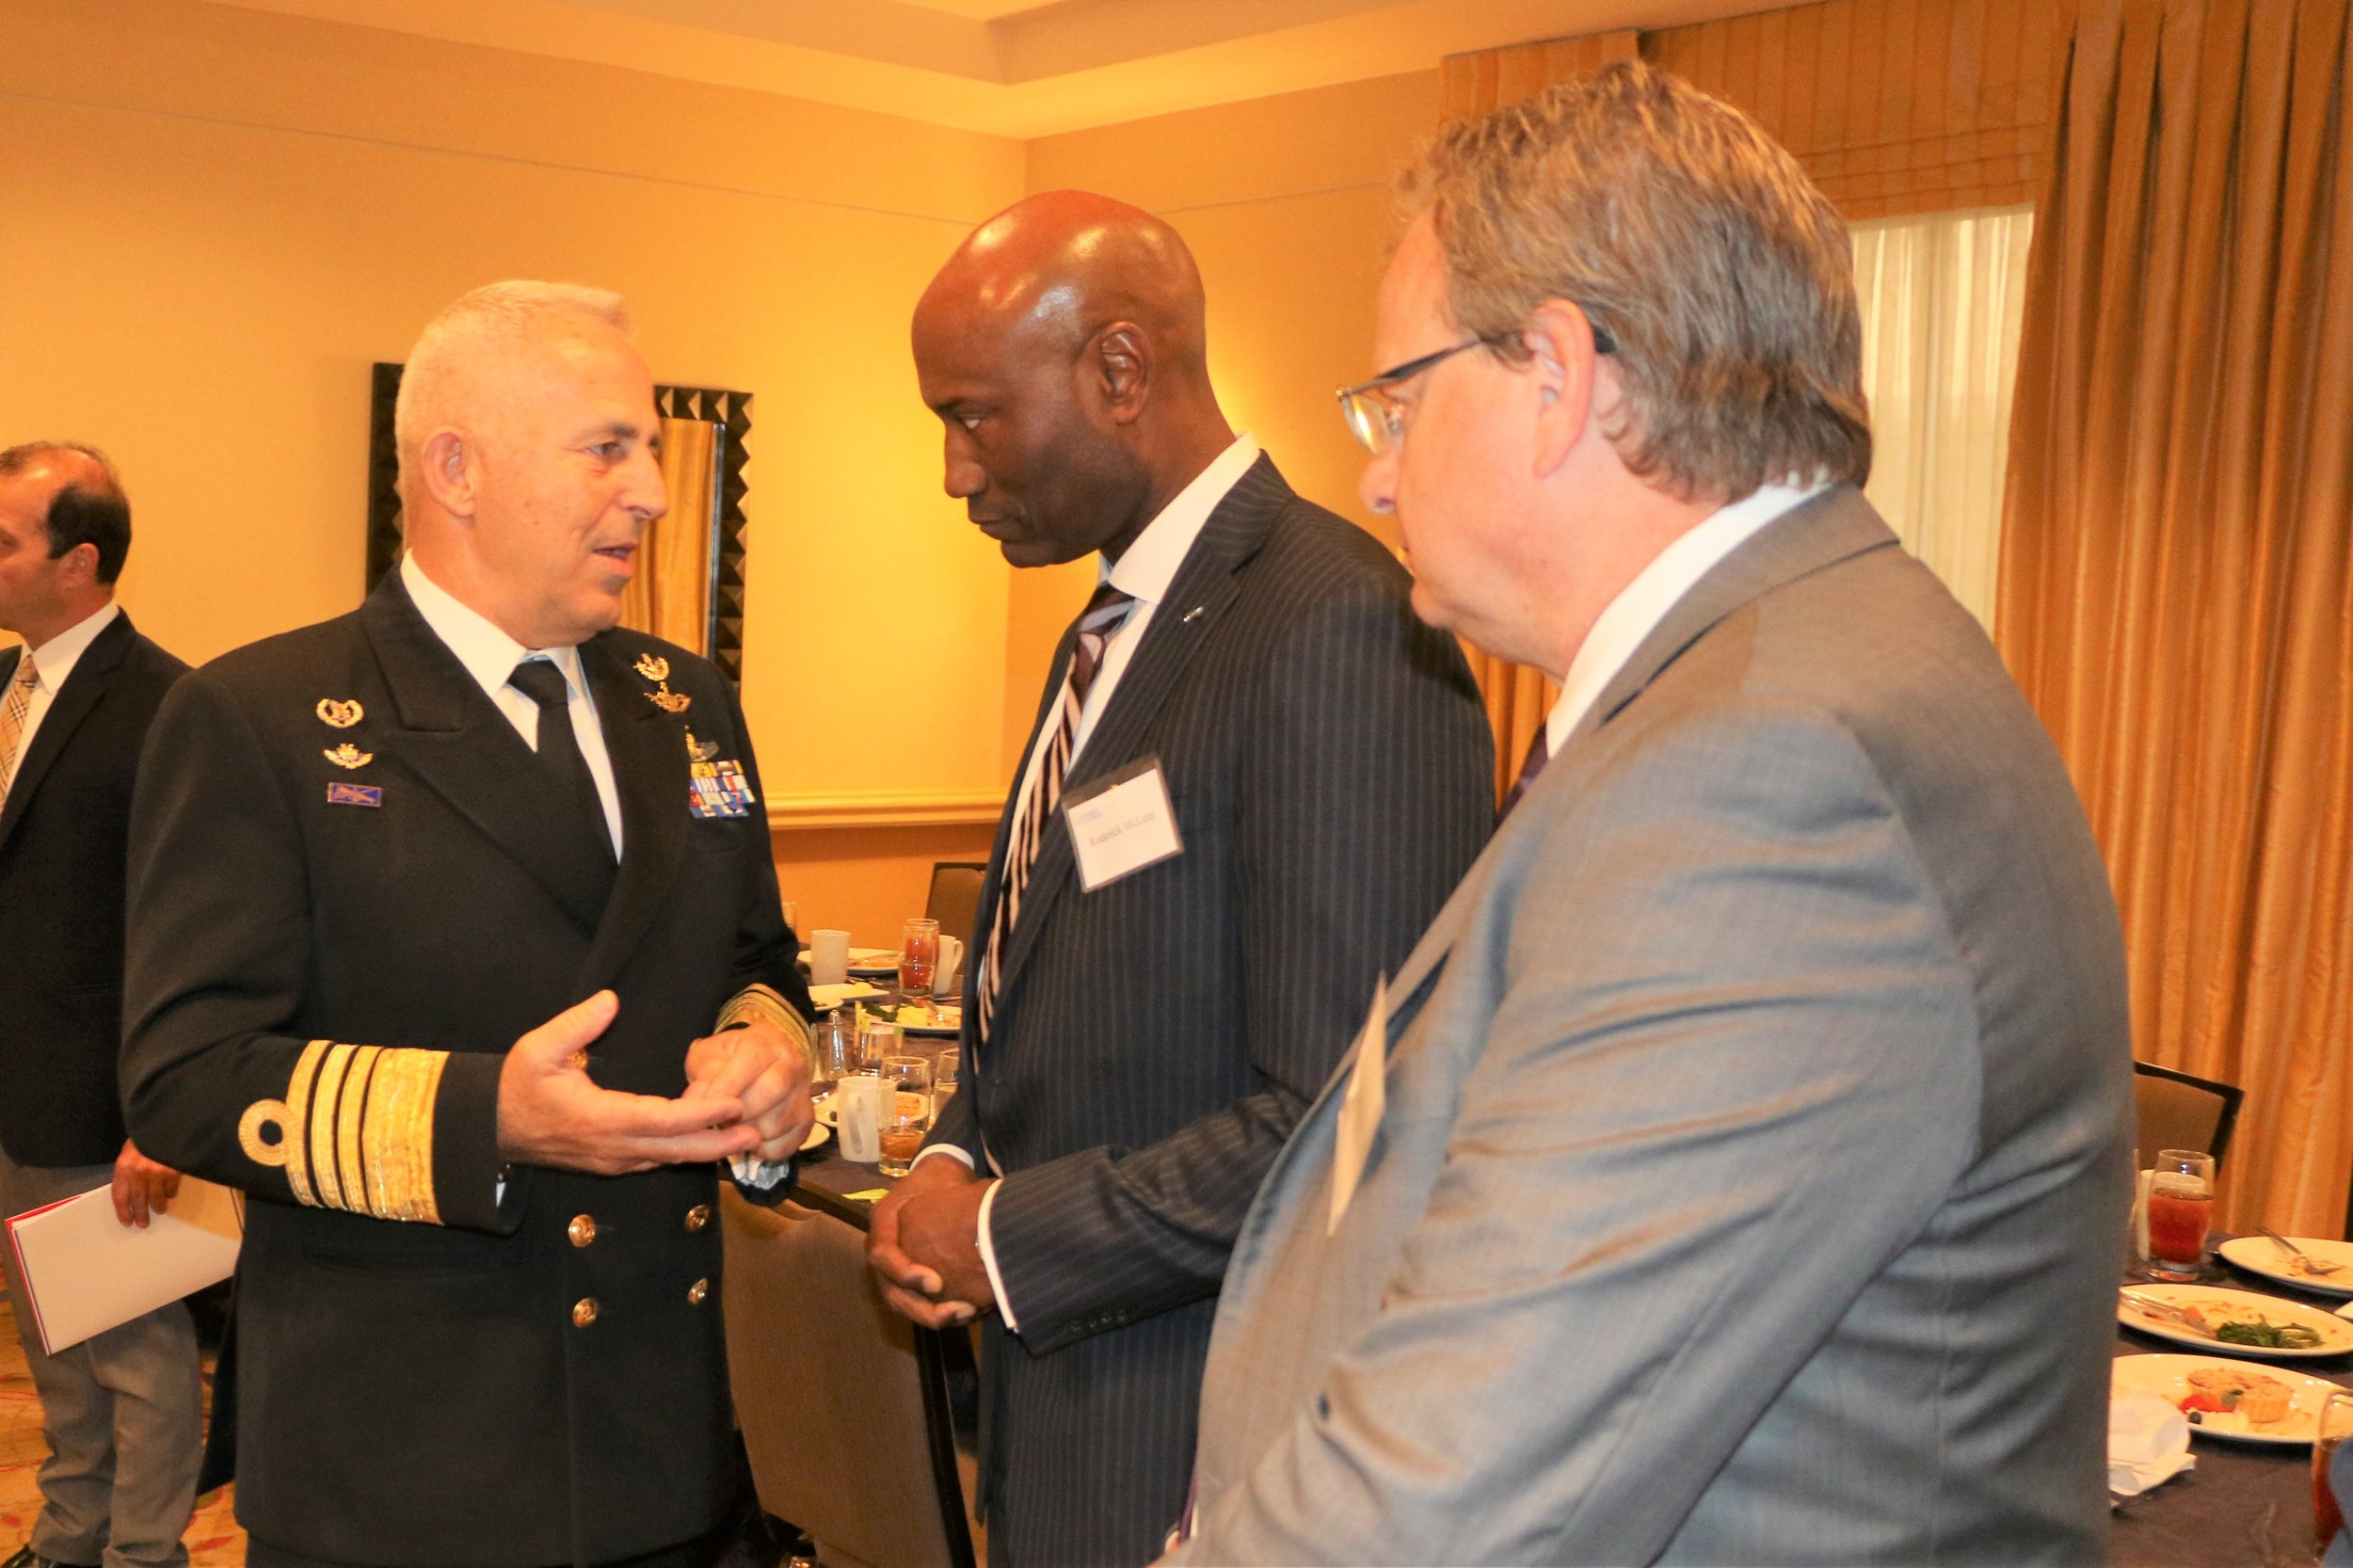 Chief of Hellenic Armed Forces, Admiral Evangelos Apostolakis, chats with representatives from Lockheed Martin Aeronautics at high-level policy luncheon co-hosted by AHI & Lexington Institute.